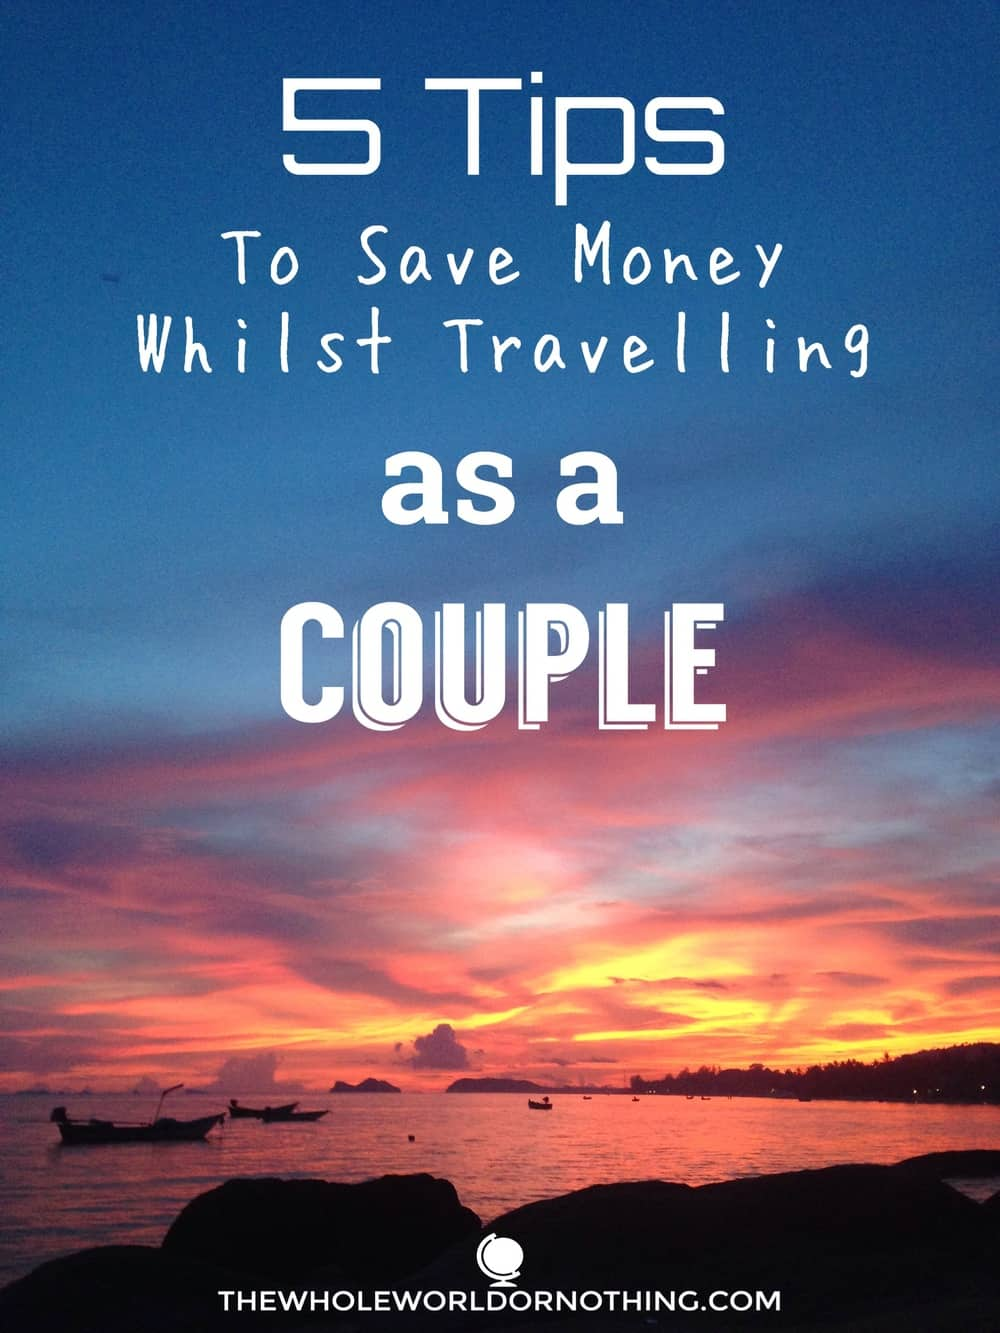 sunset on the beach 5 tips to save money whilst travelling as a couple